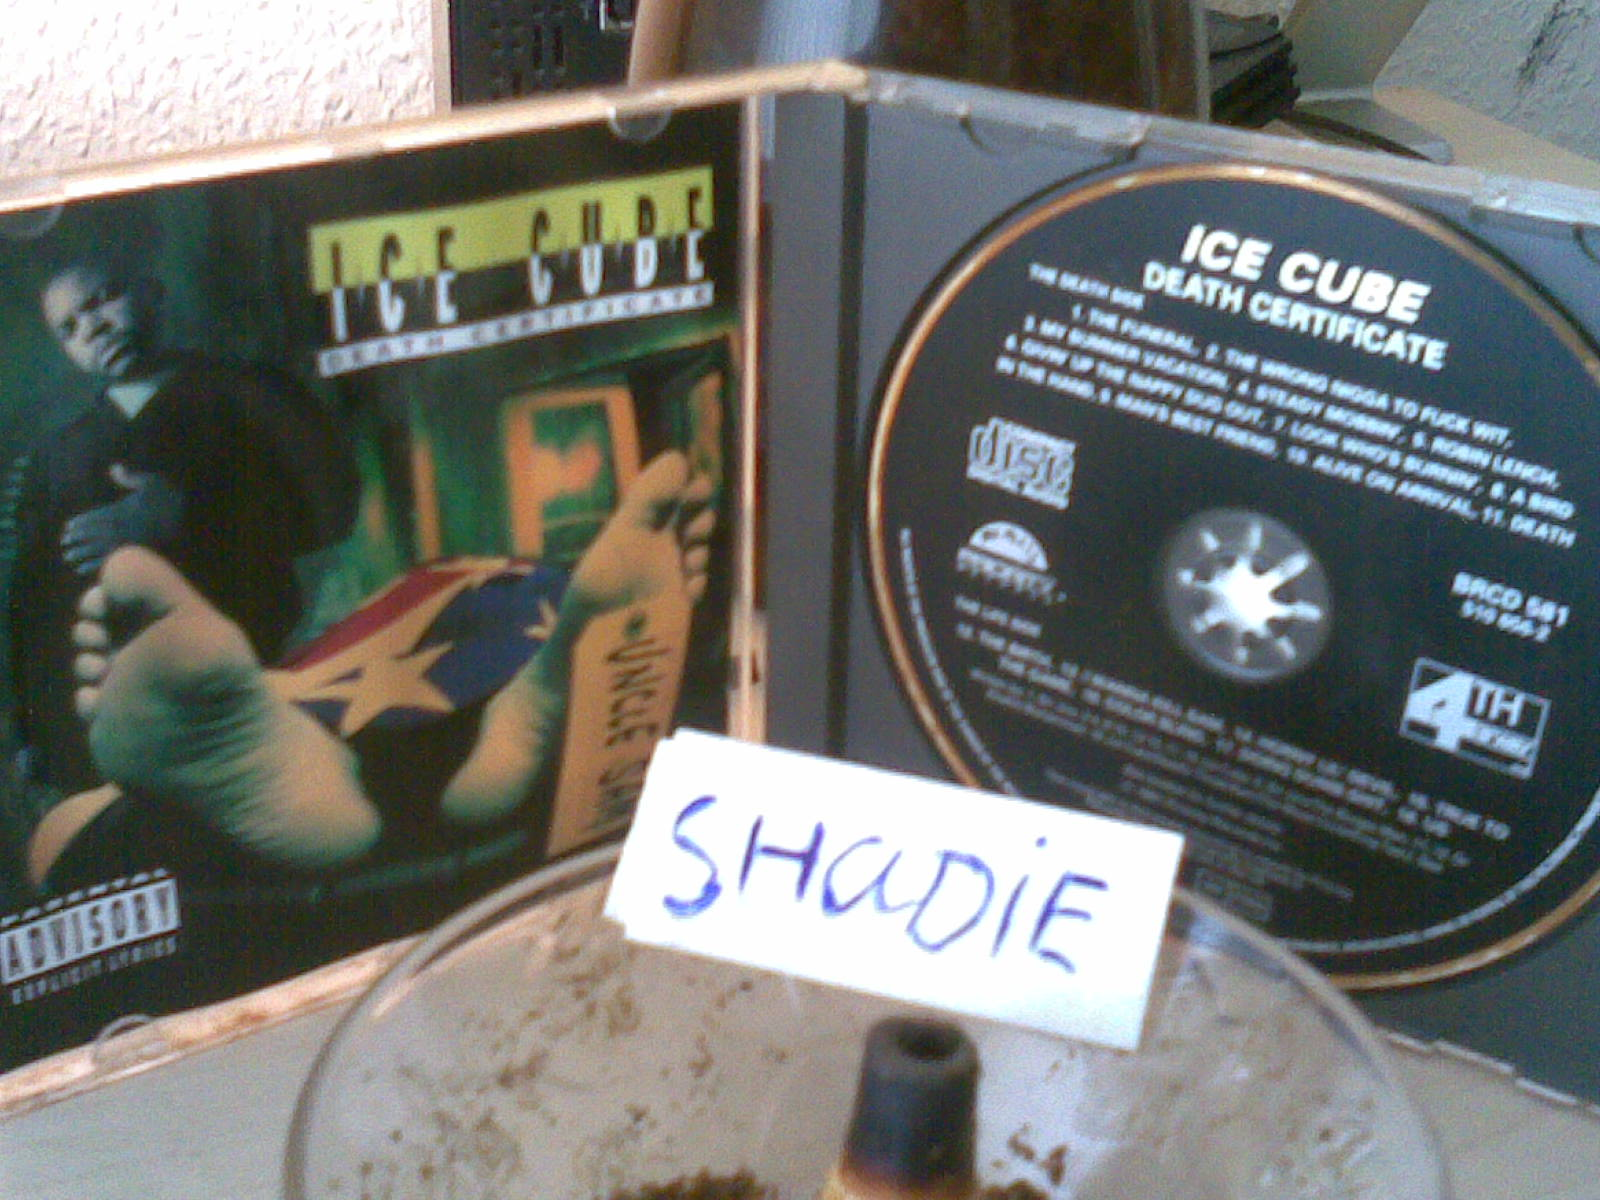 Shadie ice cube death certificate ice cube death certificate 1betcityfo Choice Image